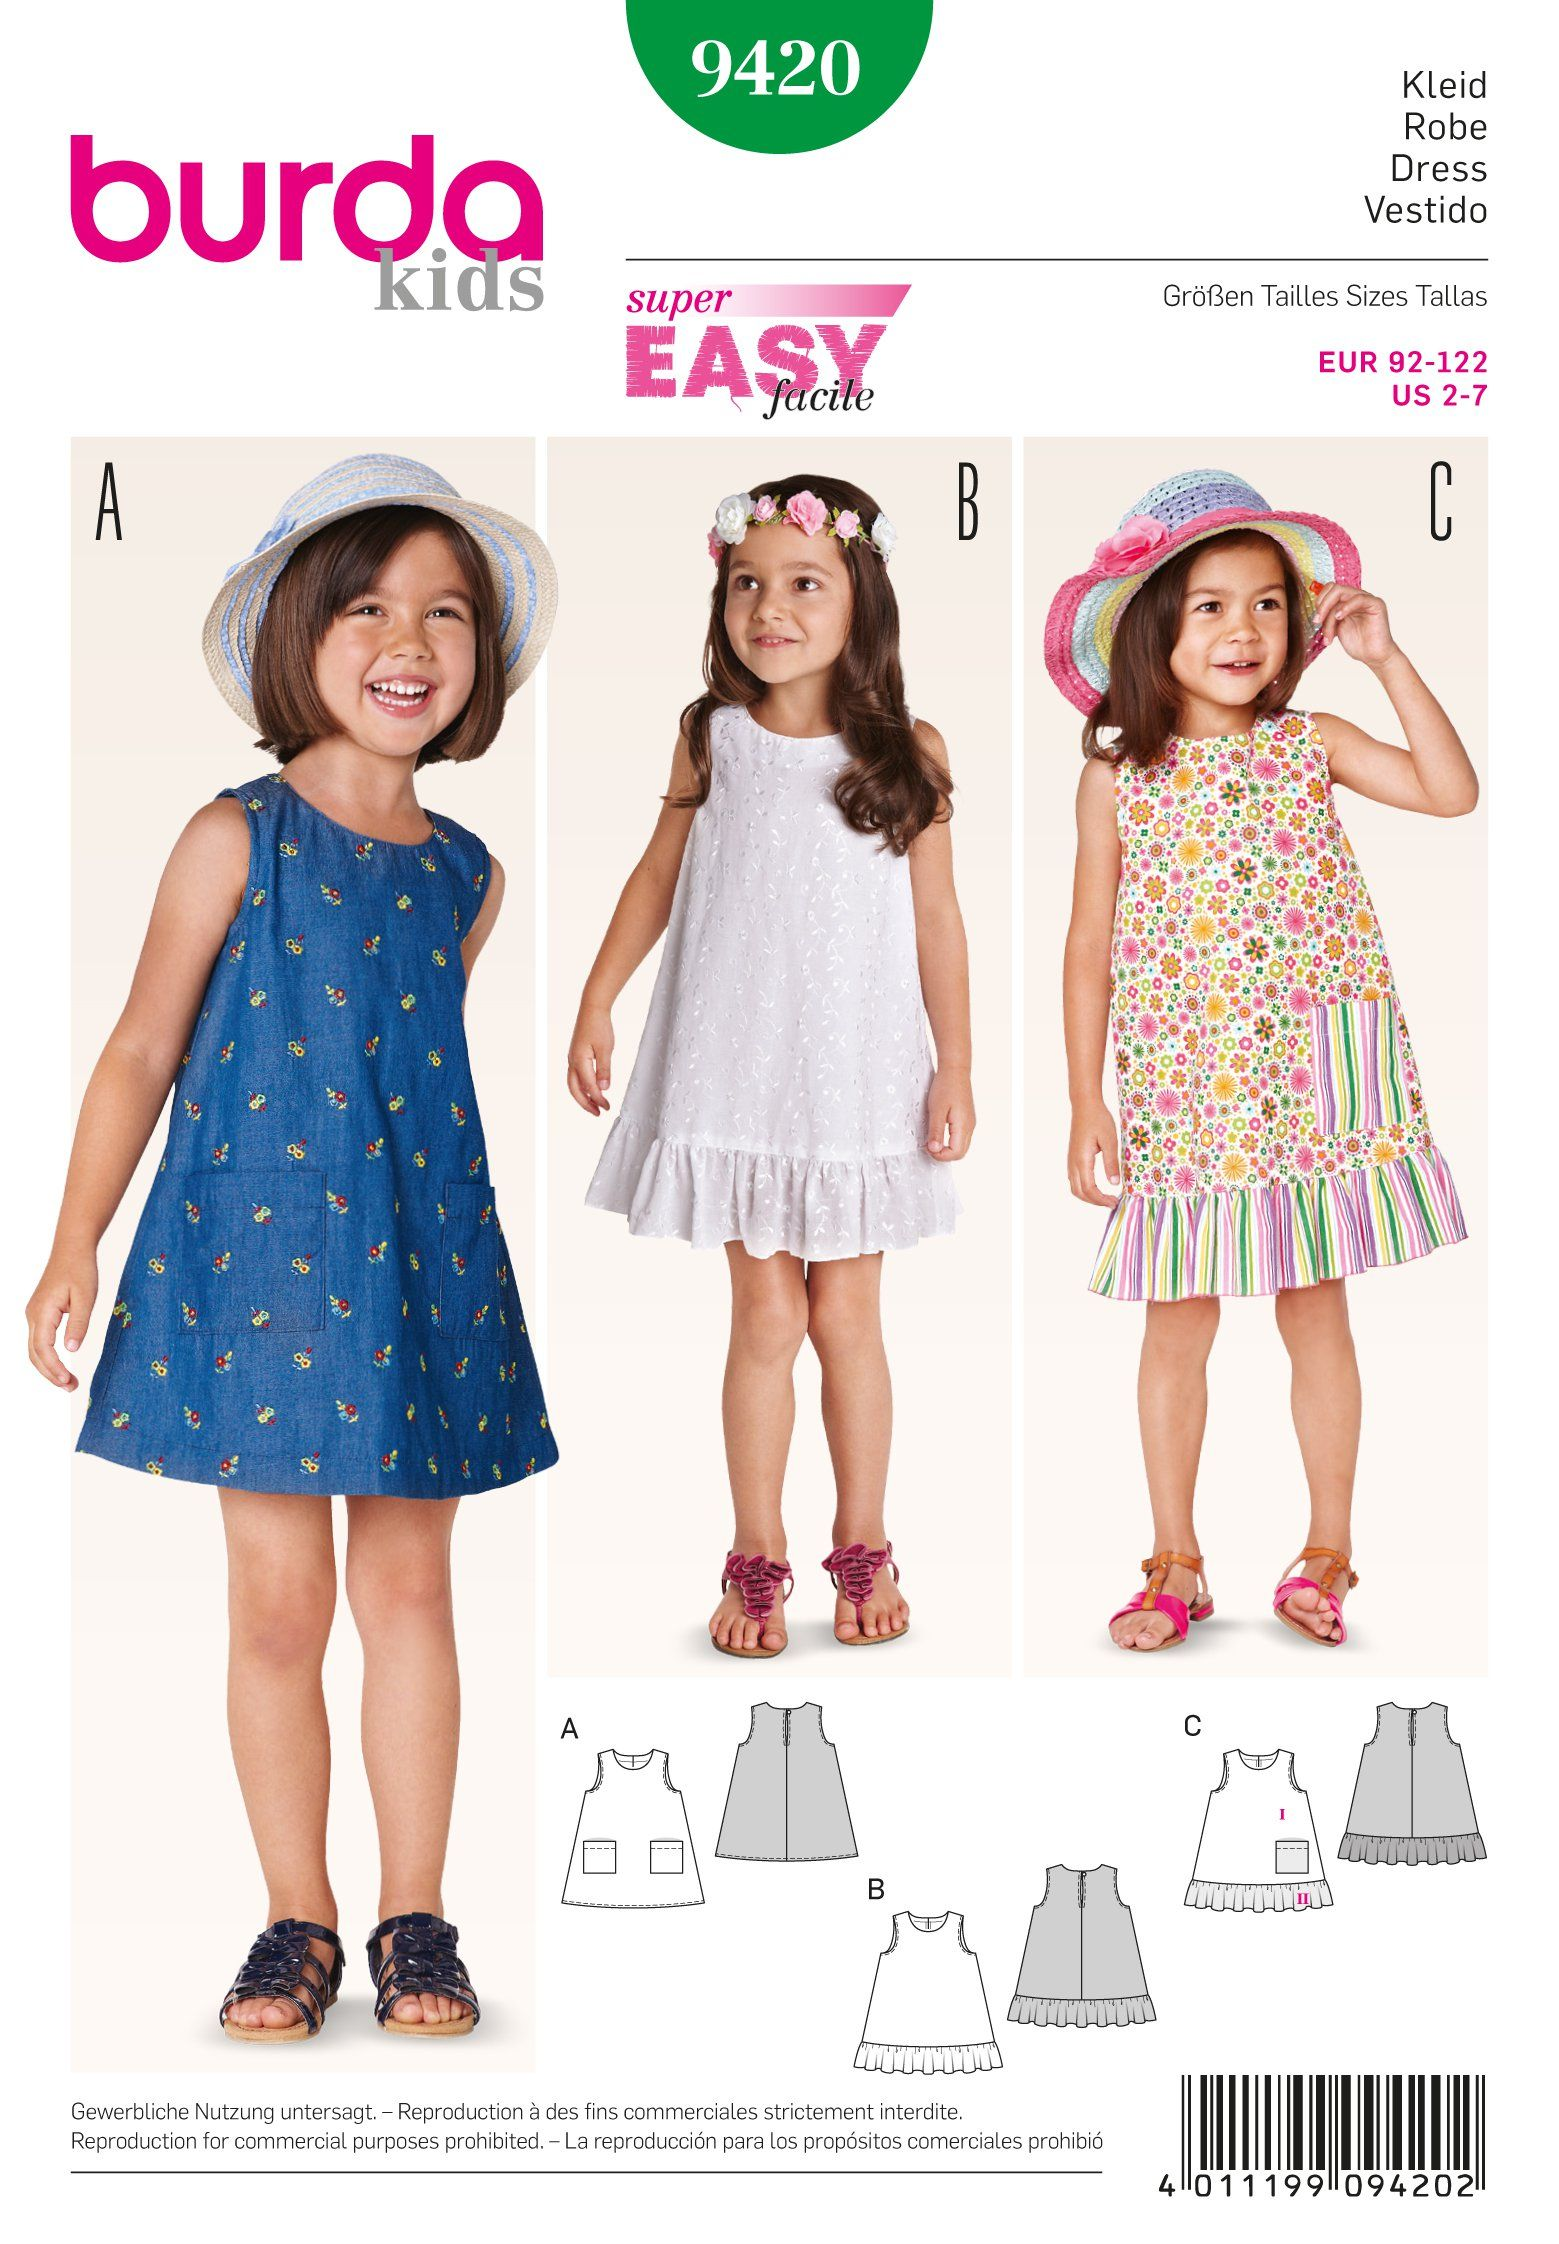 Burda 9420 burda style toddlers toddler sewing patterns sewing burda 9420 burda style toddlers sewing pattern jeuxipadfo Choice Image